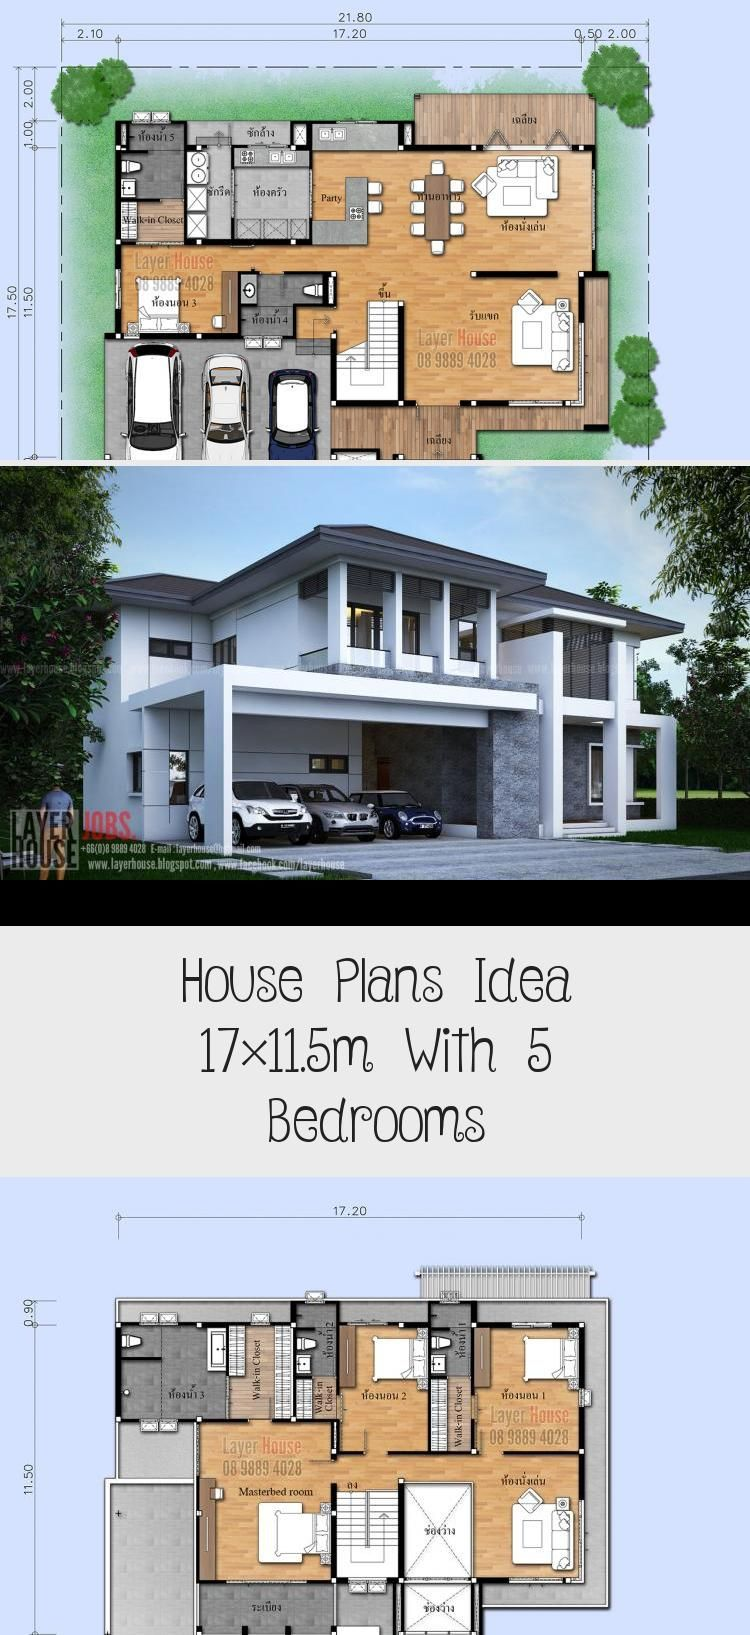 House Plans Idea 17 11 5m With 5 Bedrooms Ruby S Blog Di 2020